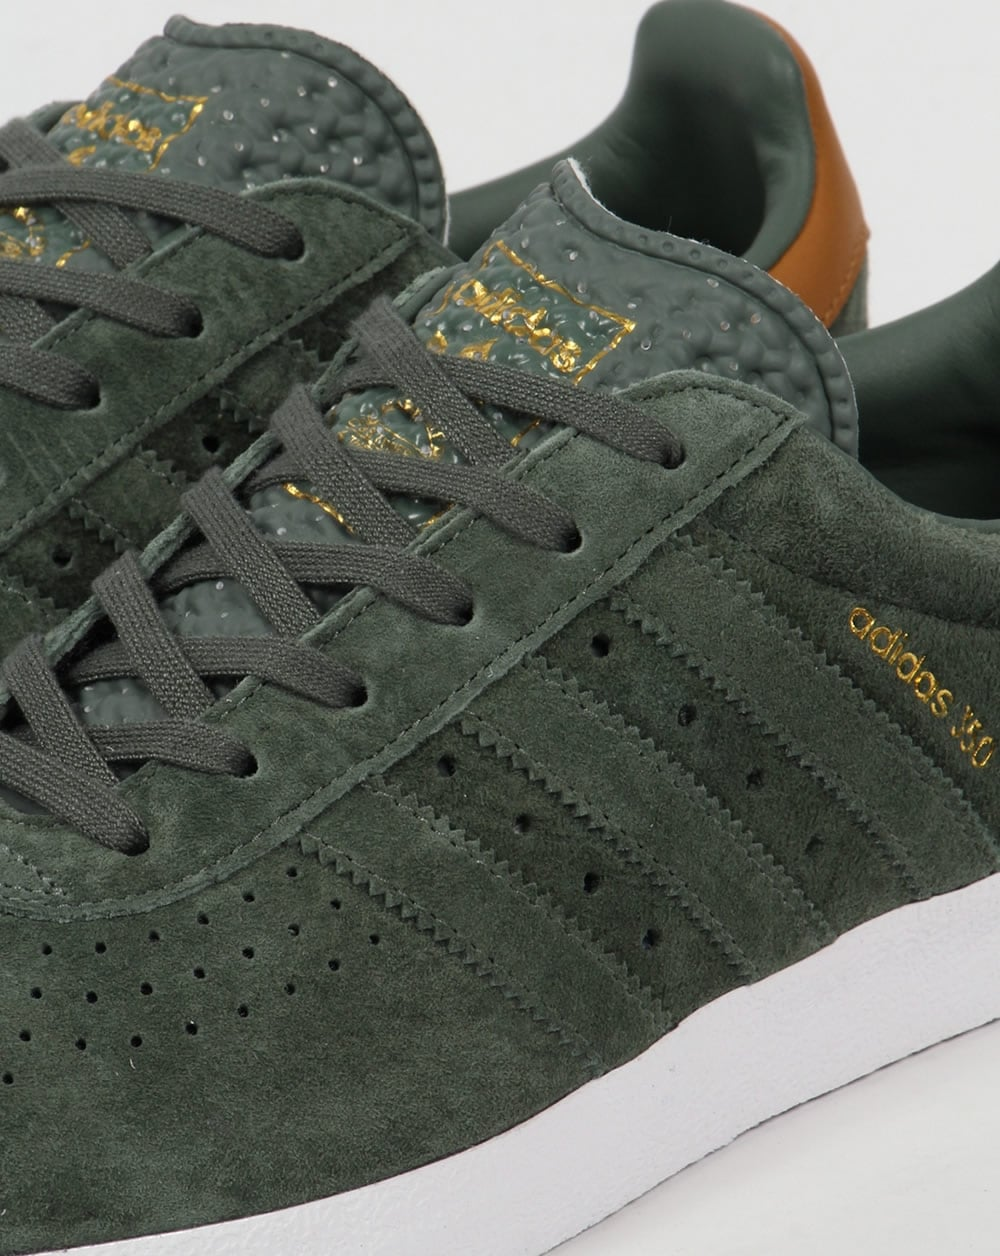 Adidas 350 Trainers DK Olive